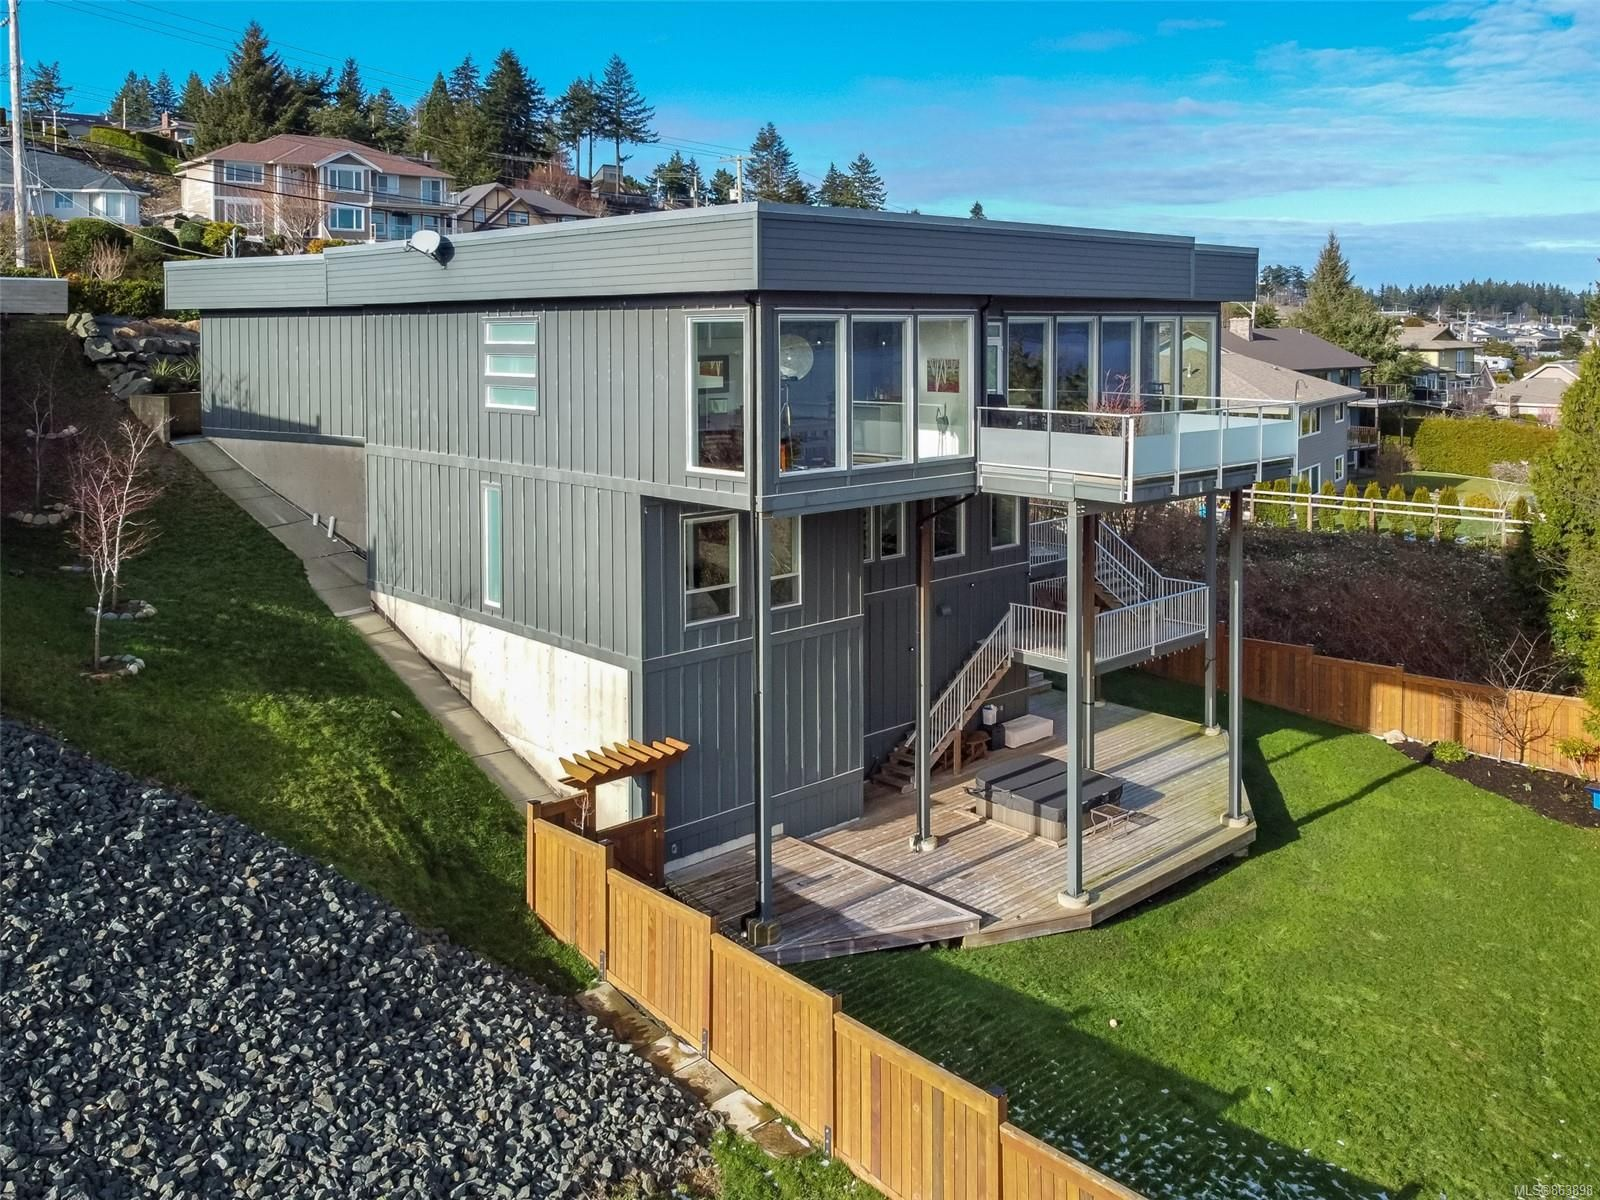 Main Photo: 435 S Murphy St in : CR Campbell River Central House for sale (Campbell River)  : MLS®# 863898